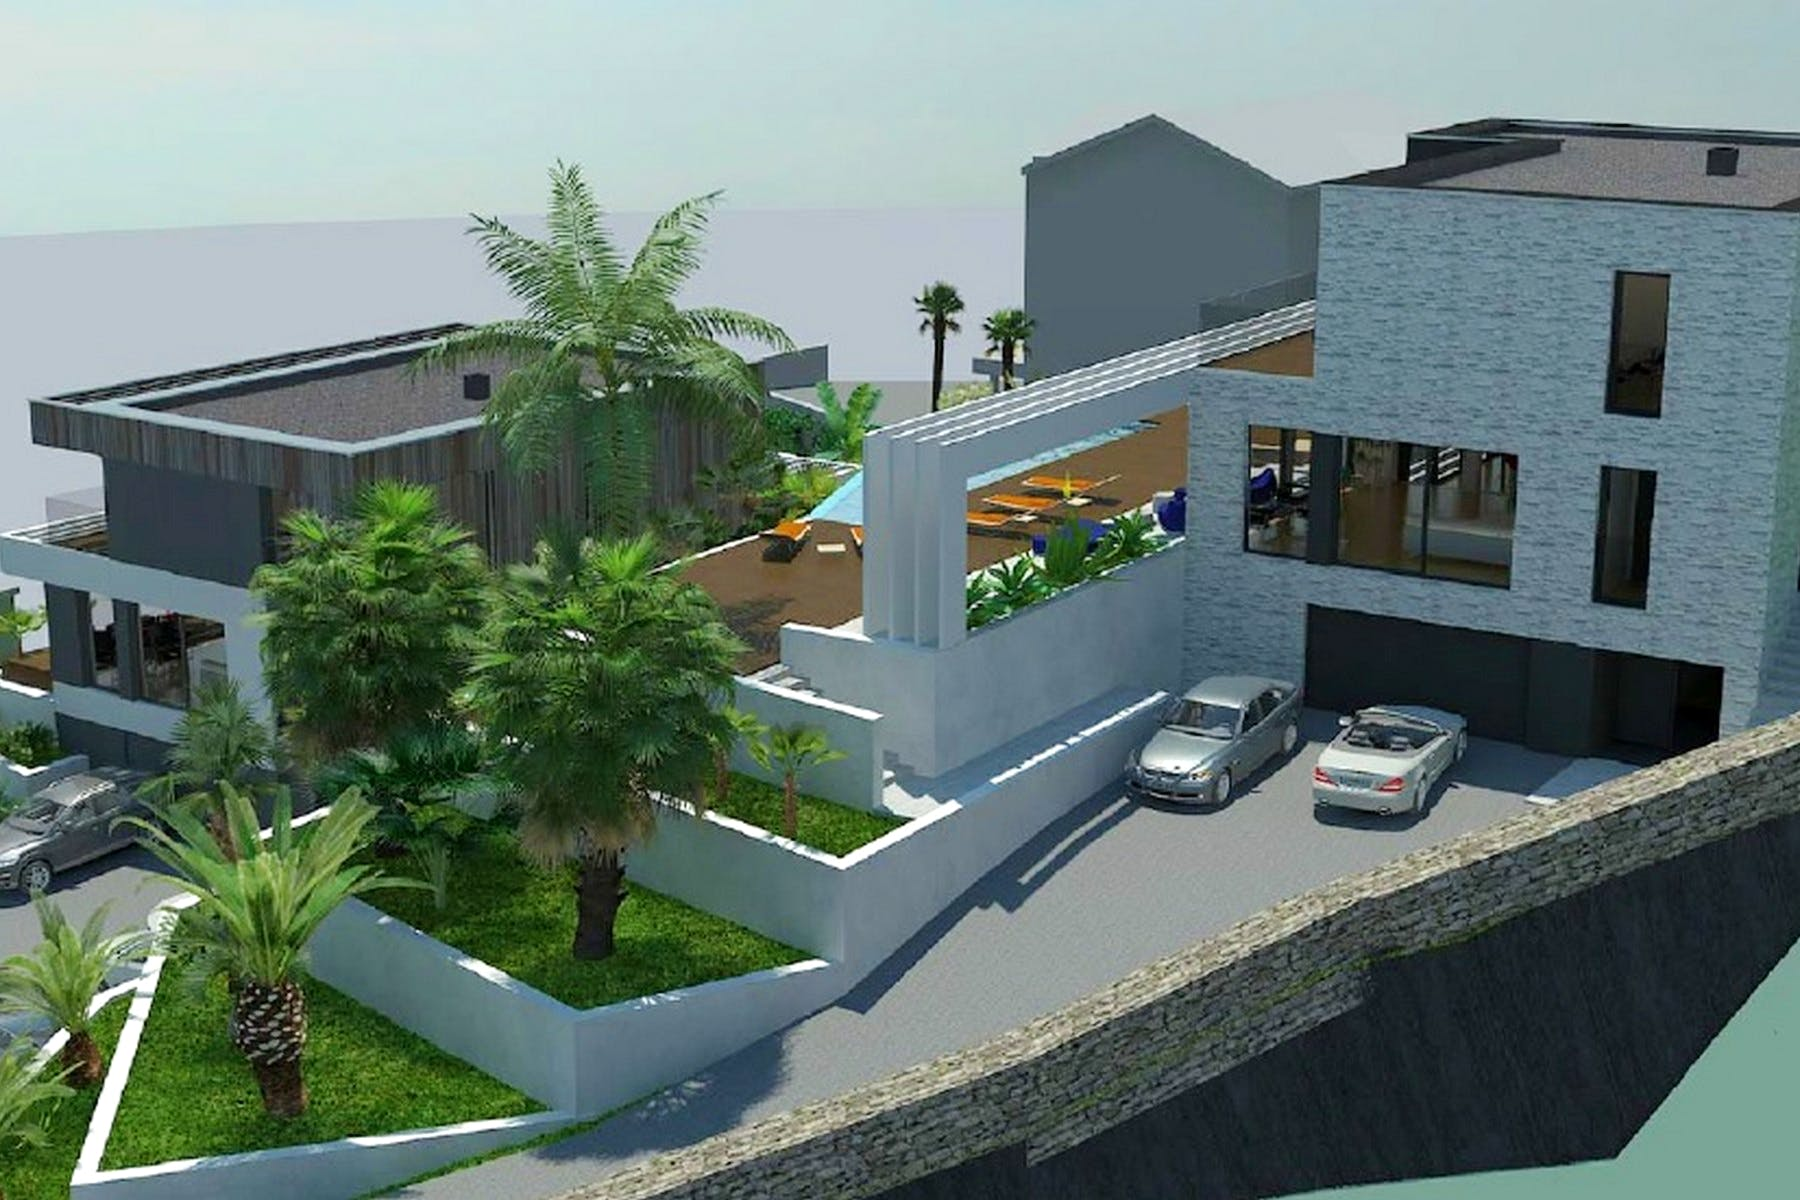 Building plot with a project for villa on Opatija Riviera